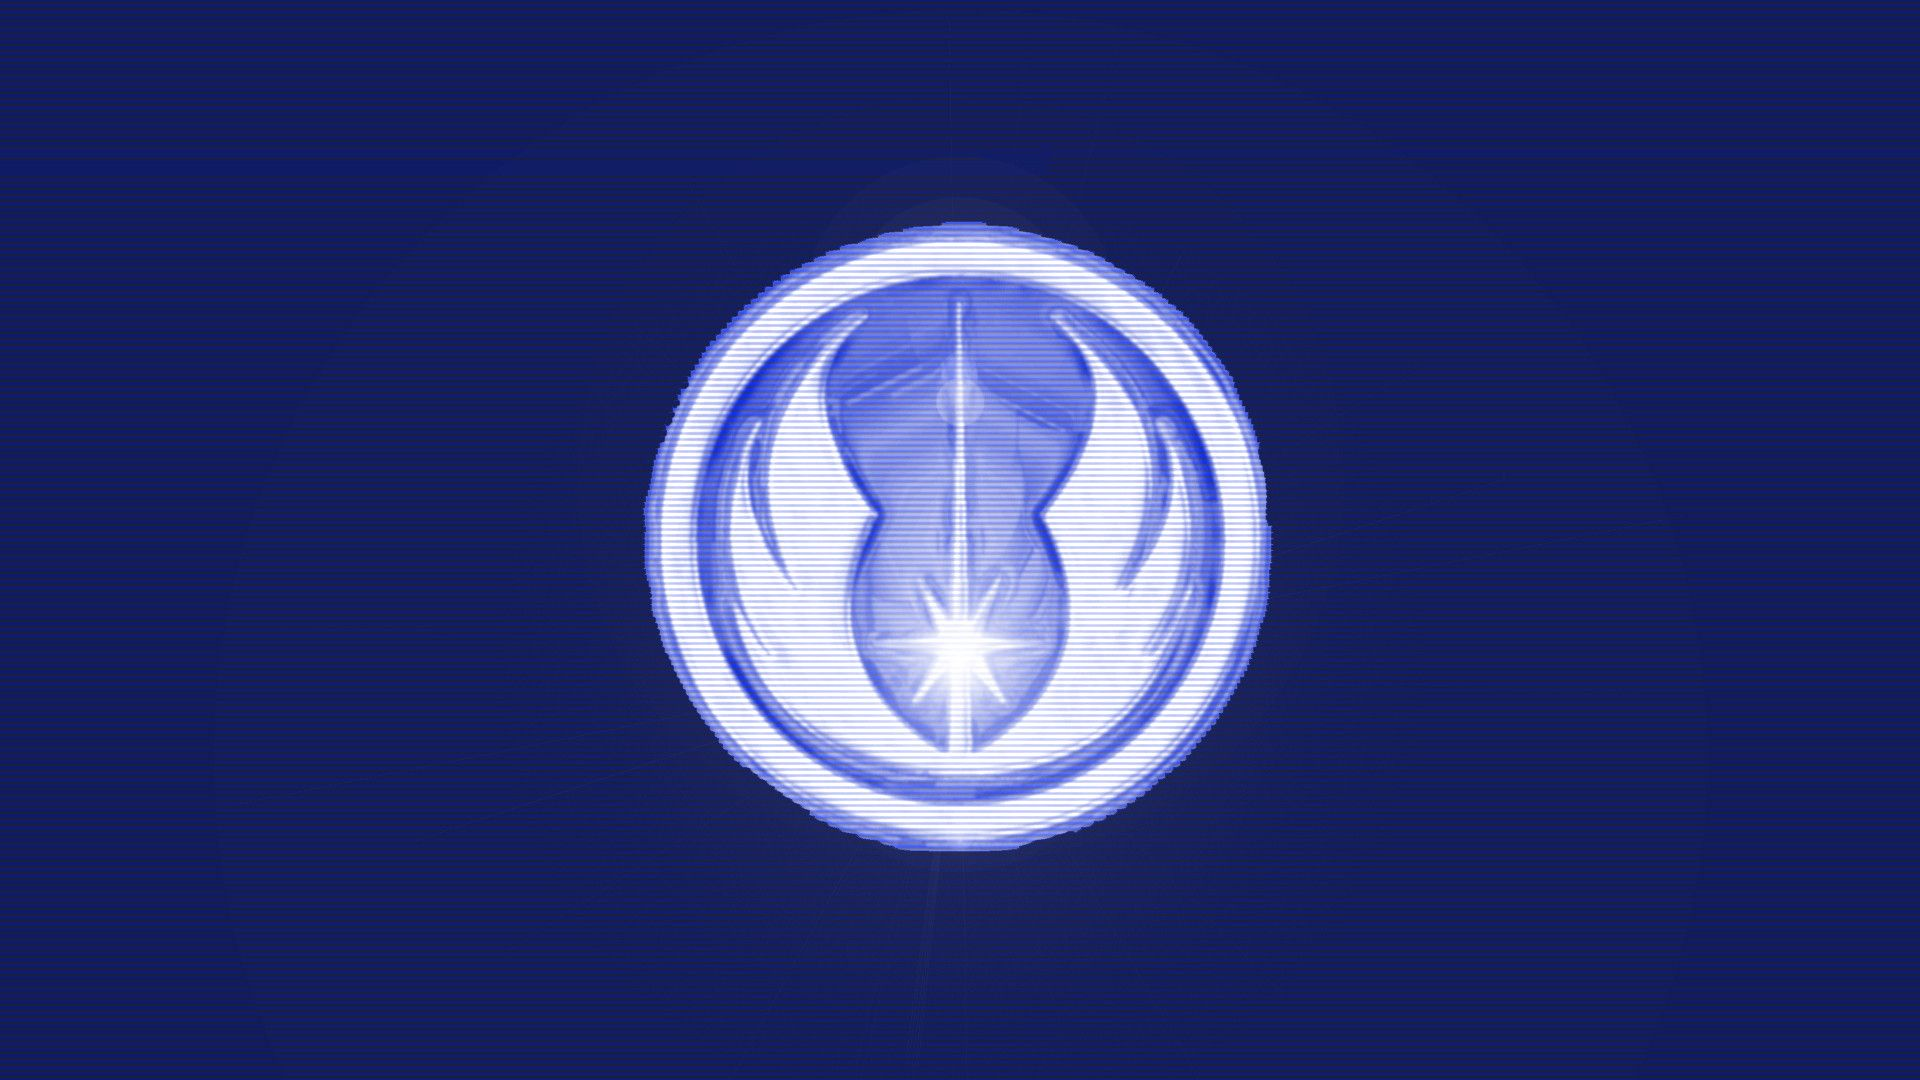 Star Wars Jedi Wallpapers 1920x1080